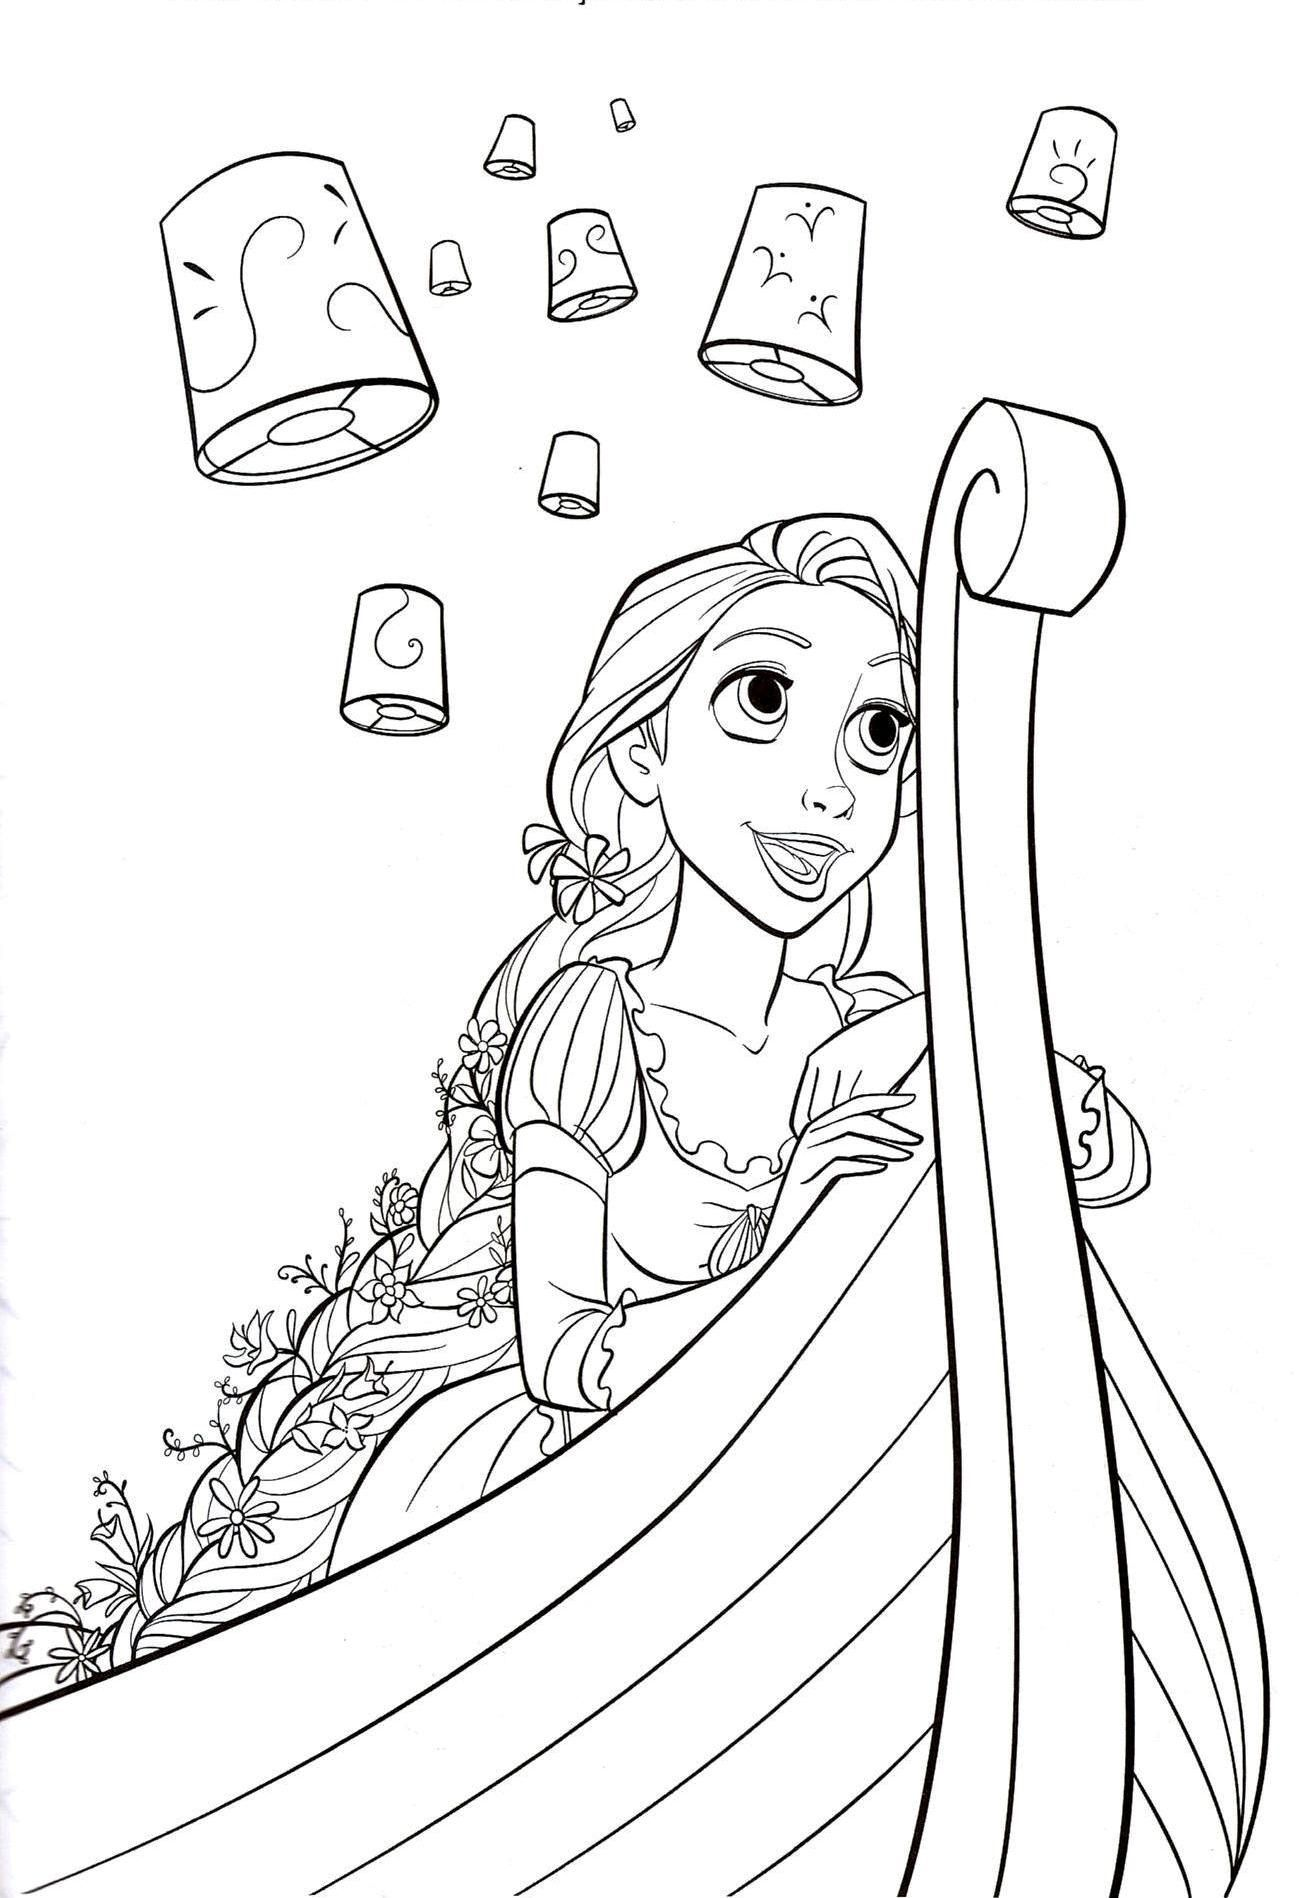 Disney Rapunzel Coloring Pages Tangled Coloring Pages Rapunzel Coloring Pages Princess Coloring Pages